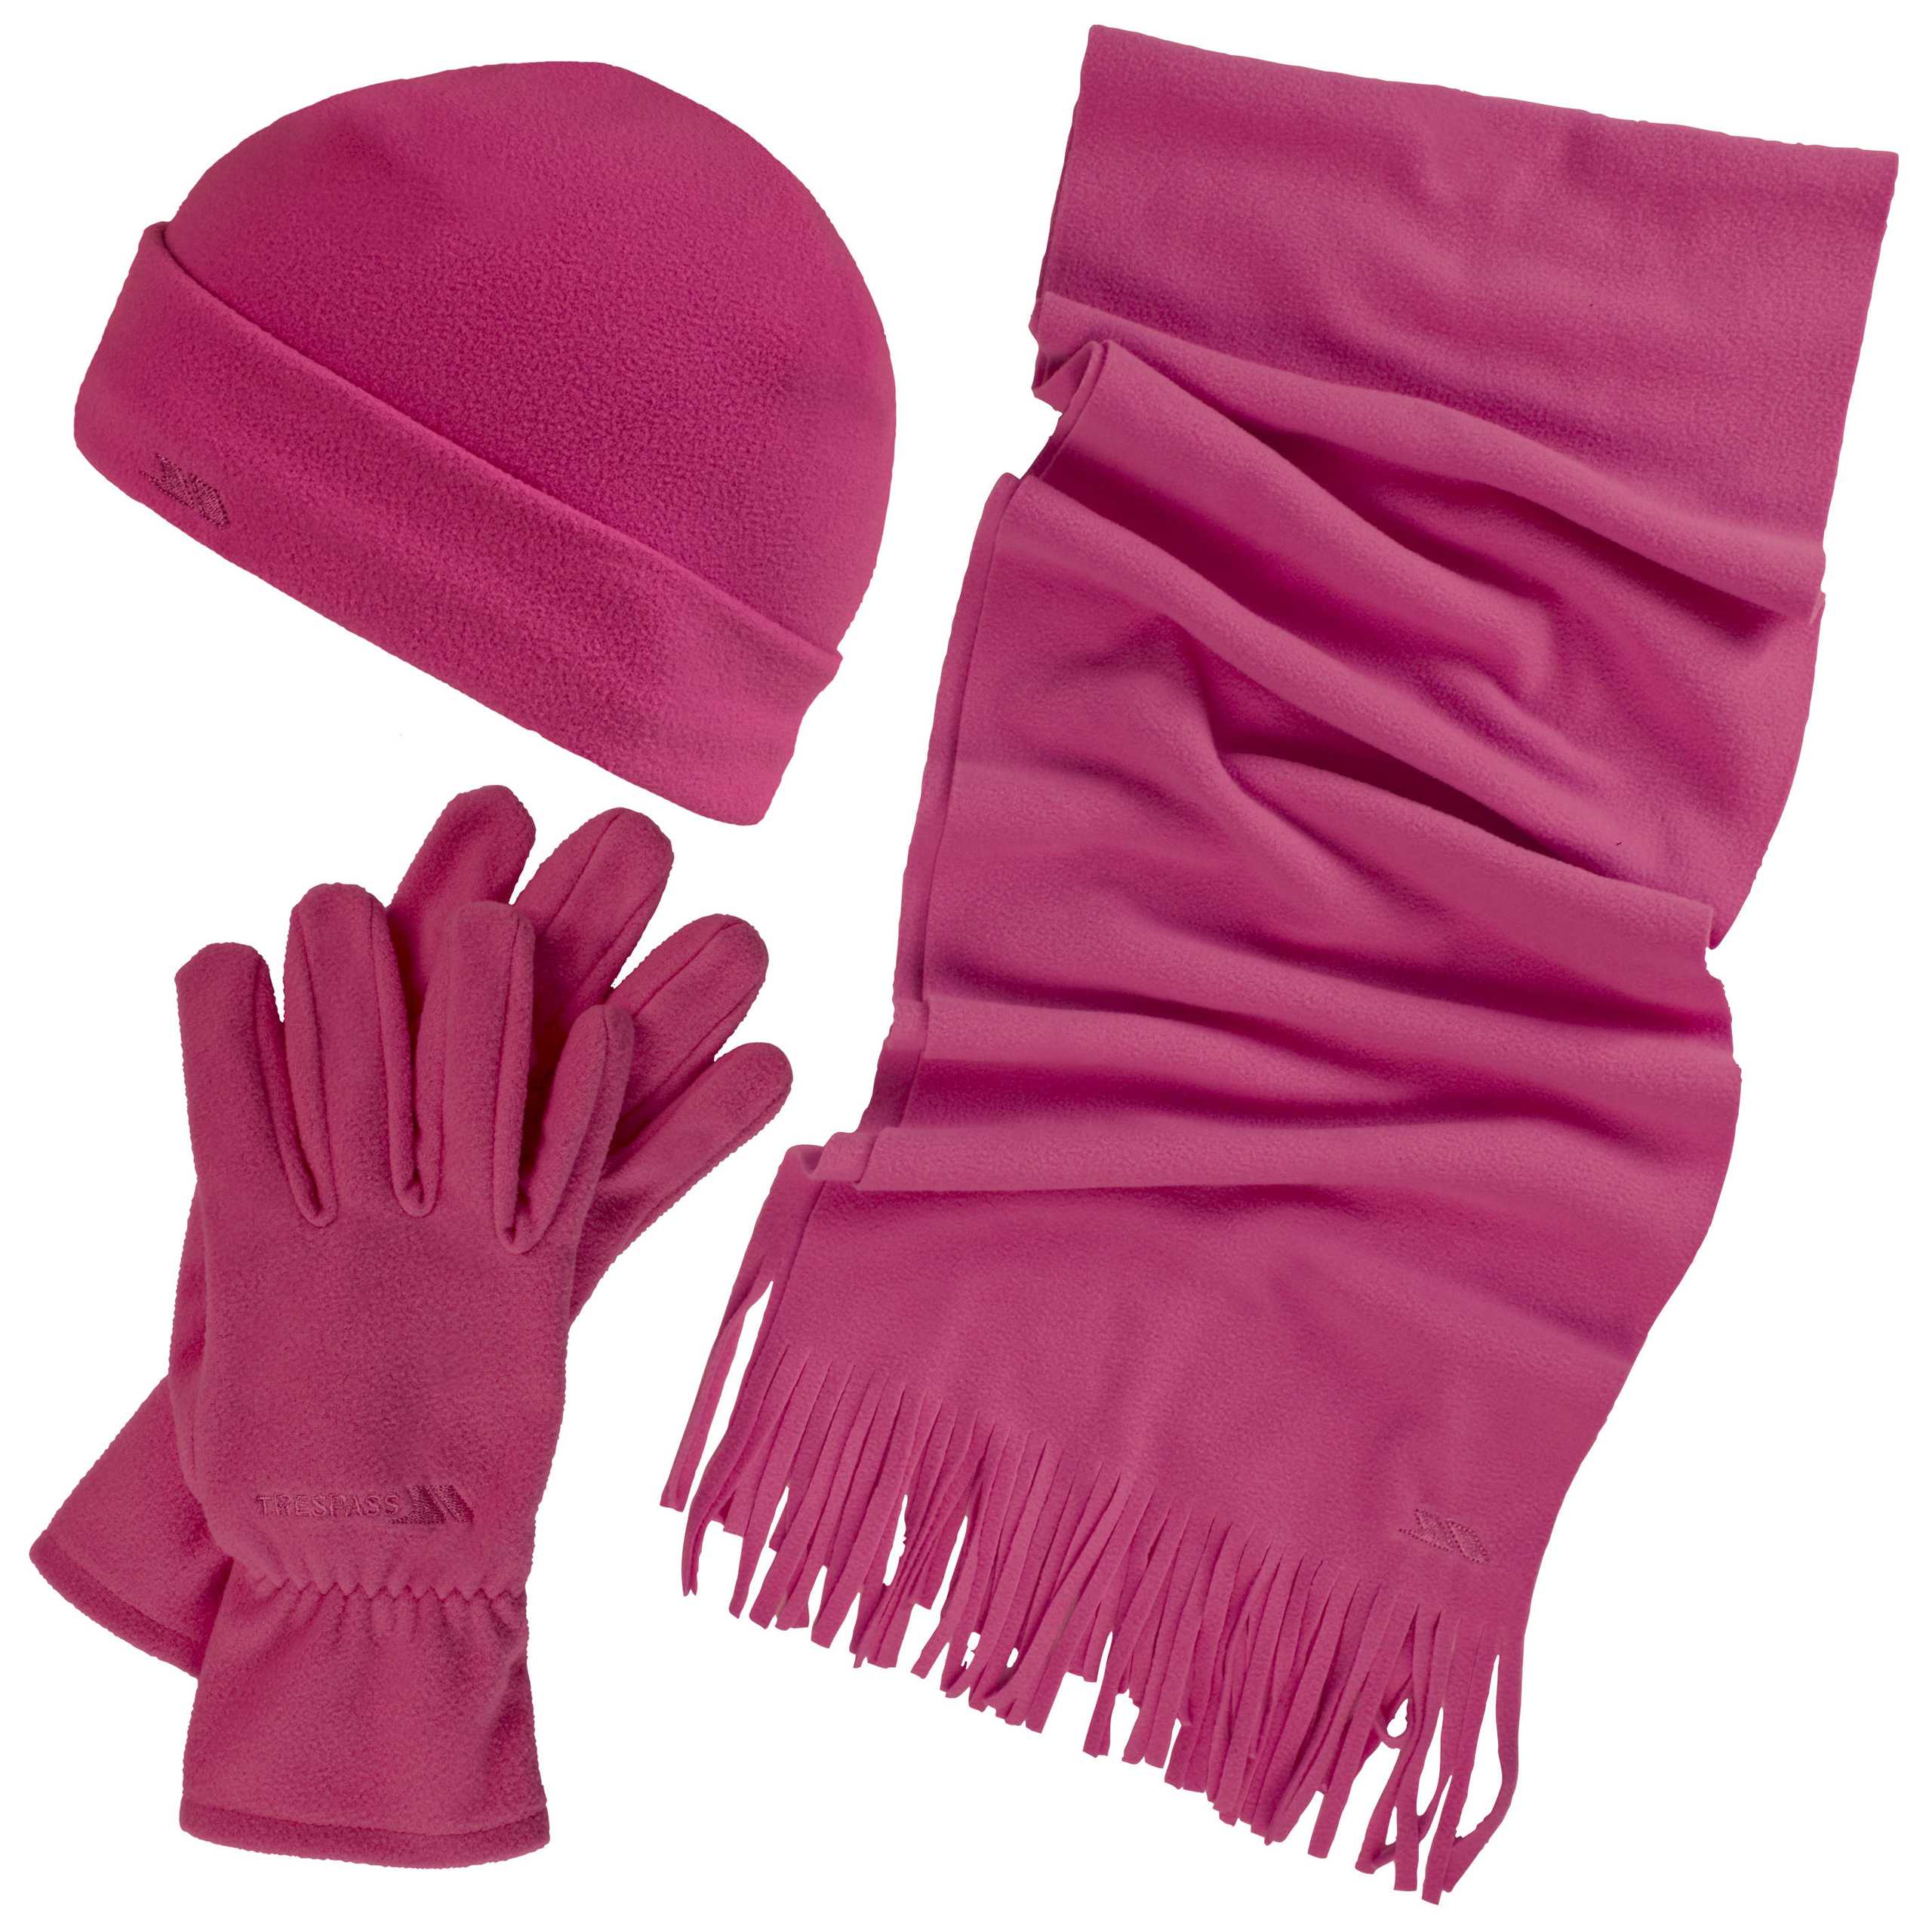 Girls' Hats, Gloves & Mittens. Showing 48 of results that match your query. Search Product Result. Product - McCall's Pattern Children's and Girls' Hats, Scarves, Fingerless Gloves, Mittens, All Sizes. Product Image. Price. In-store purchase only. Product Title.